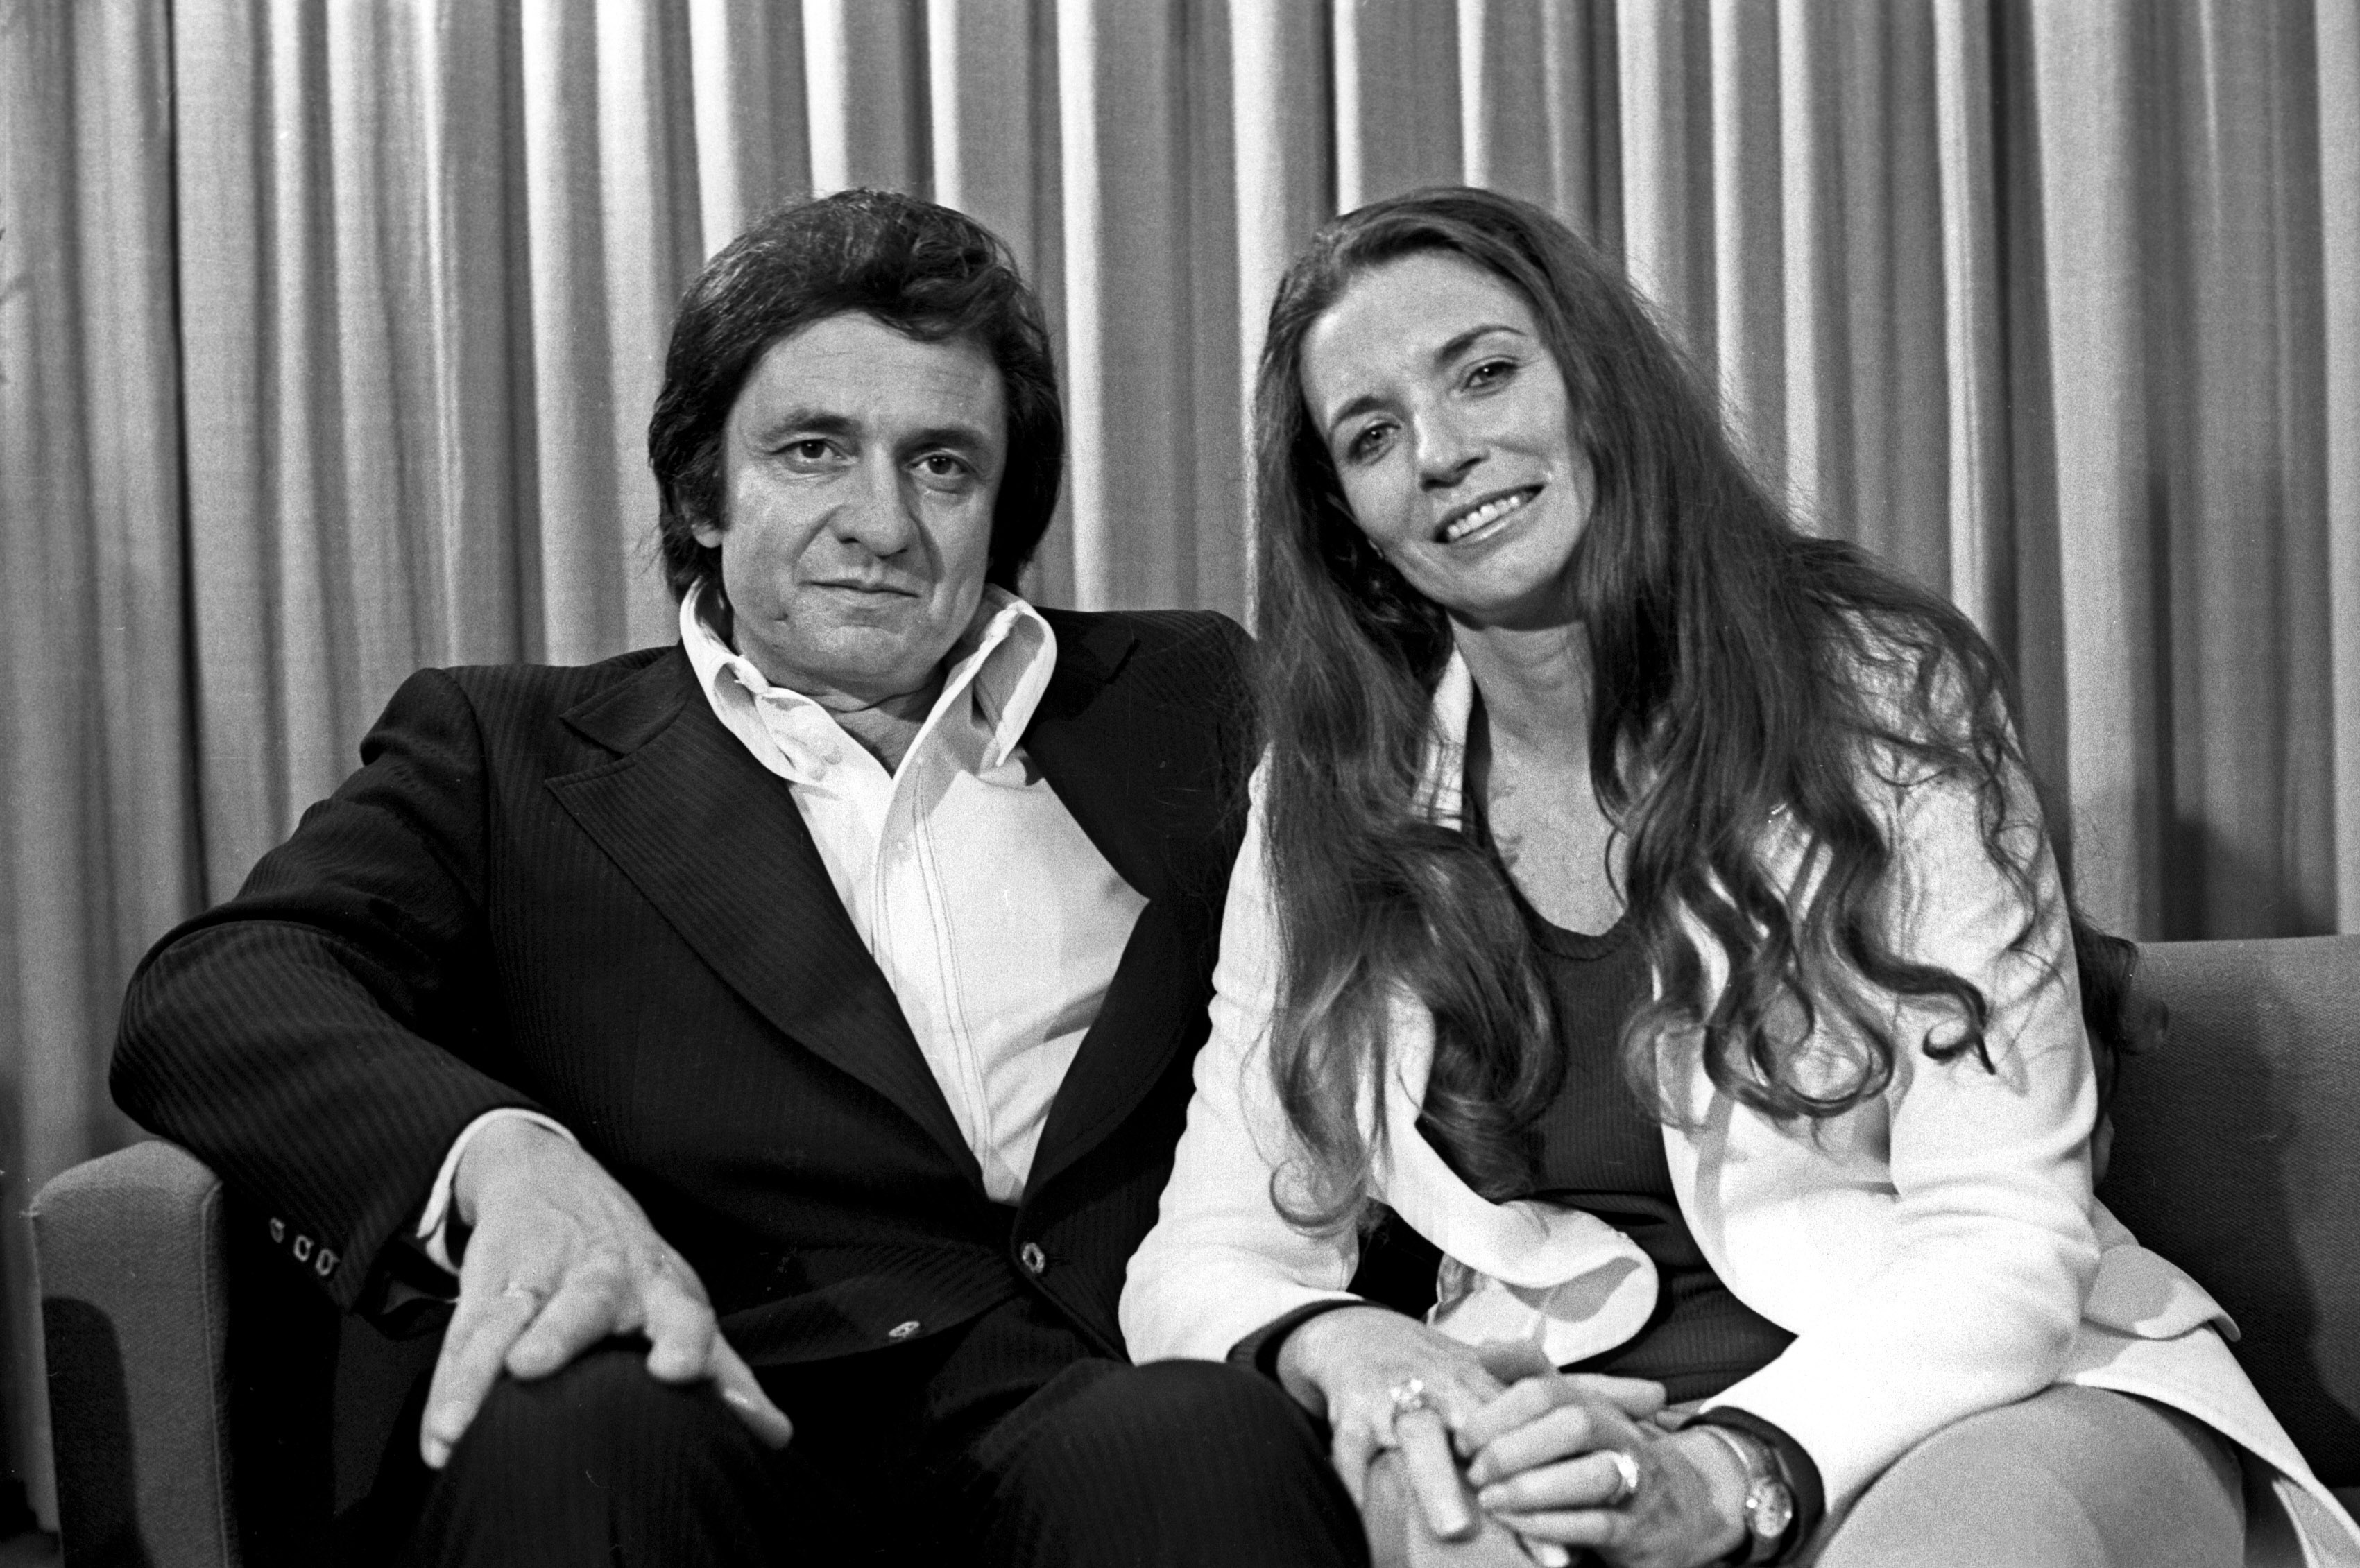 Johnny Cash and his wife June Carter arrived in Australia with their son John carter Cash on 19 March 1973. (Photo by Kevin B